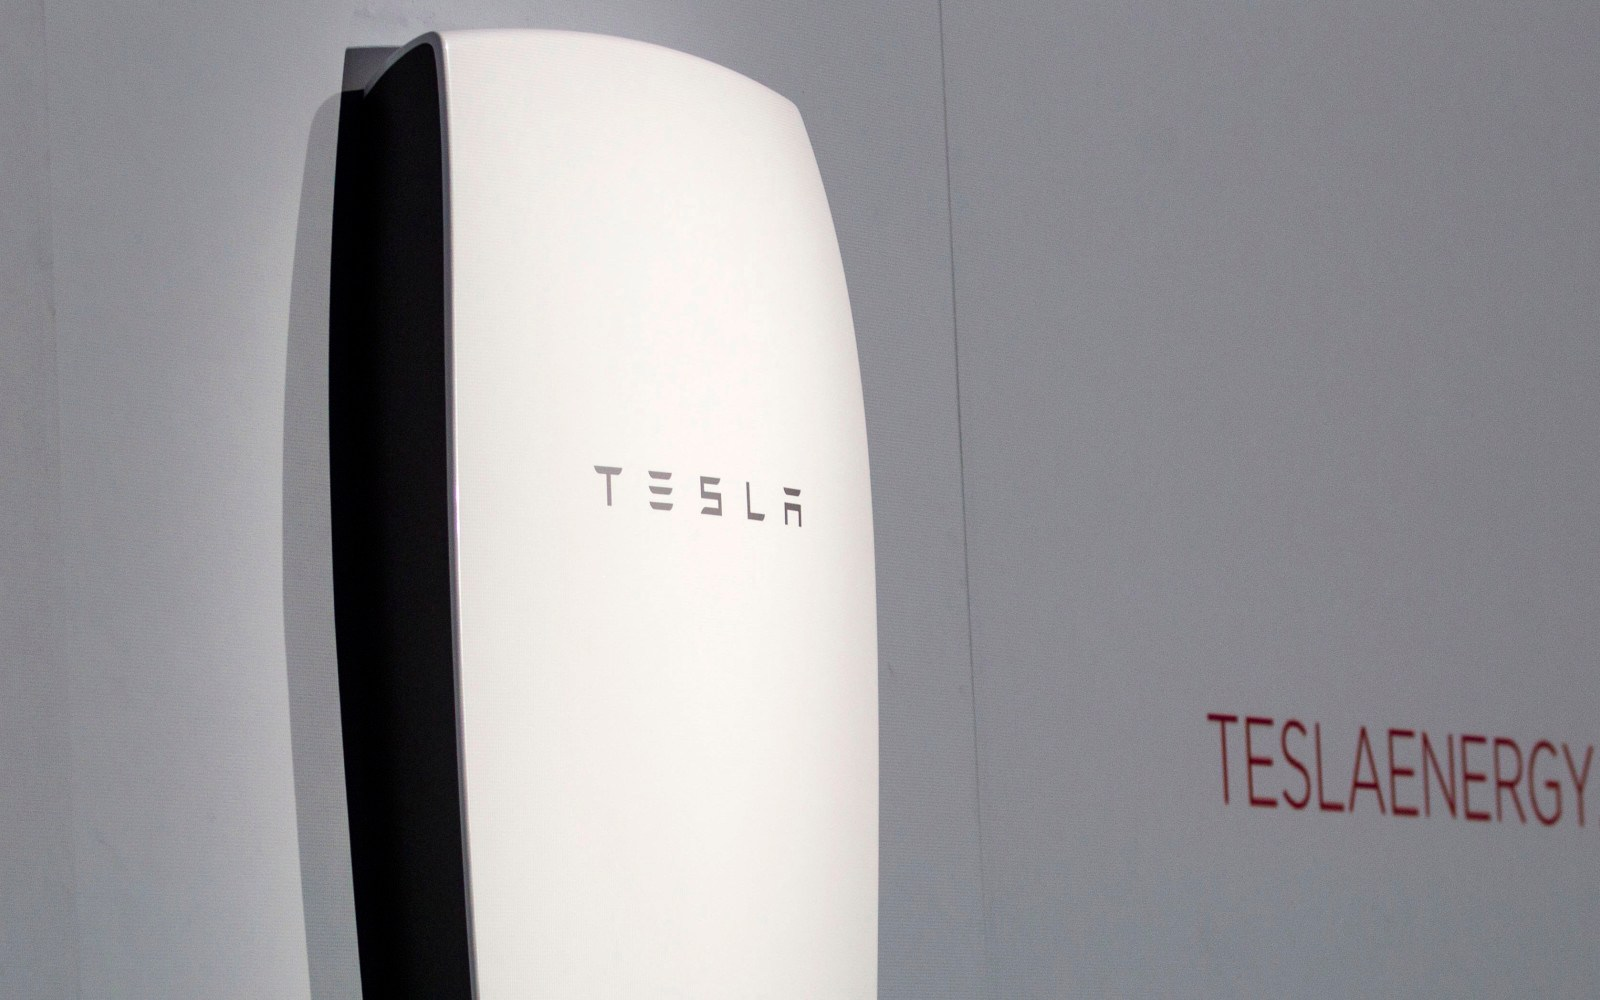 Tesla confirmed having discontinued the 10 kWh Powerwall for backup power to focus on daily cycling version